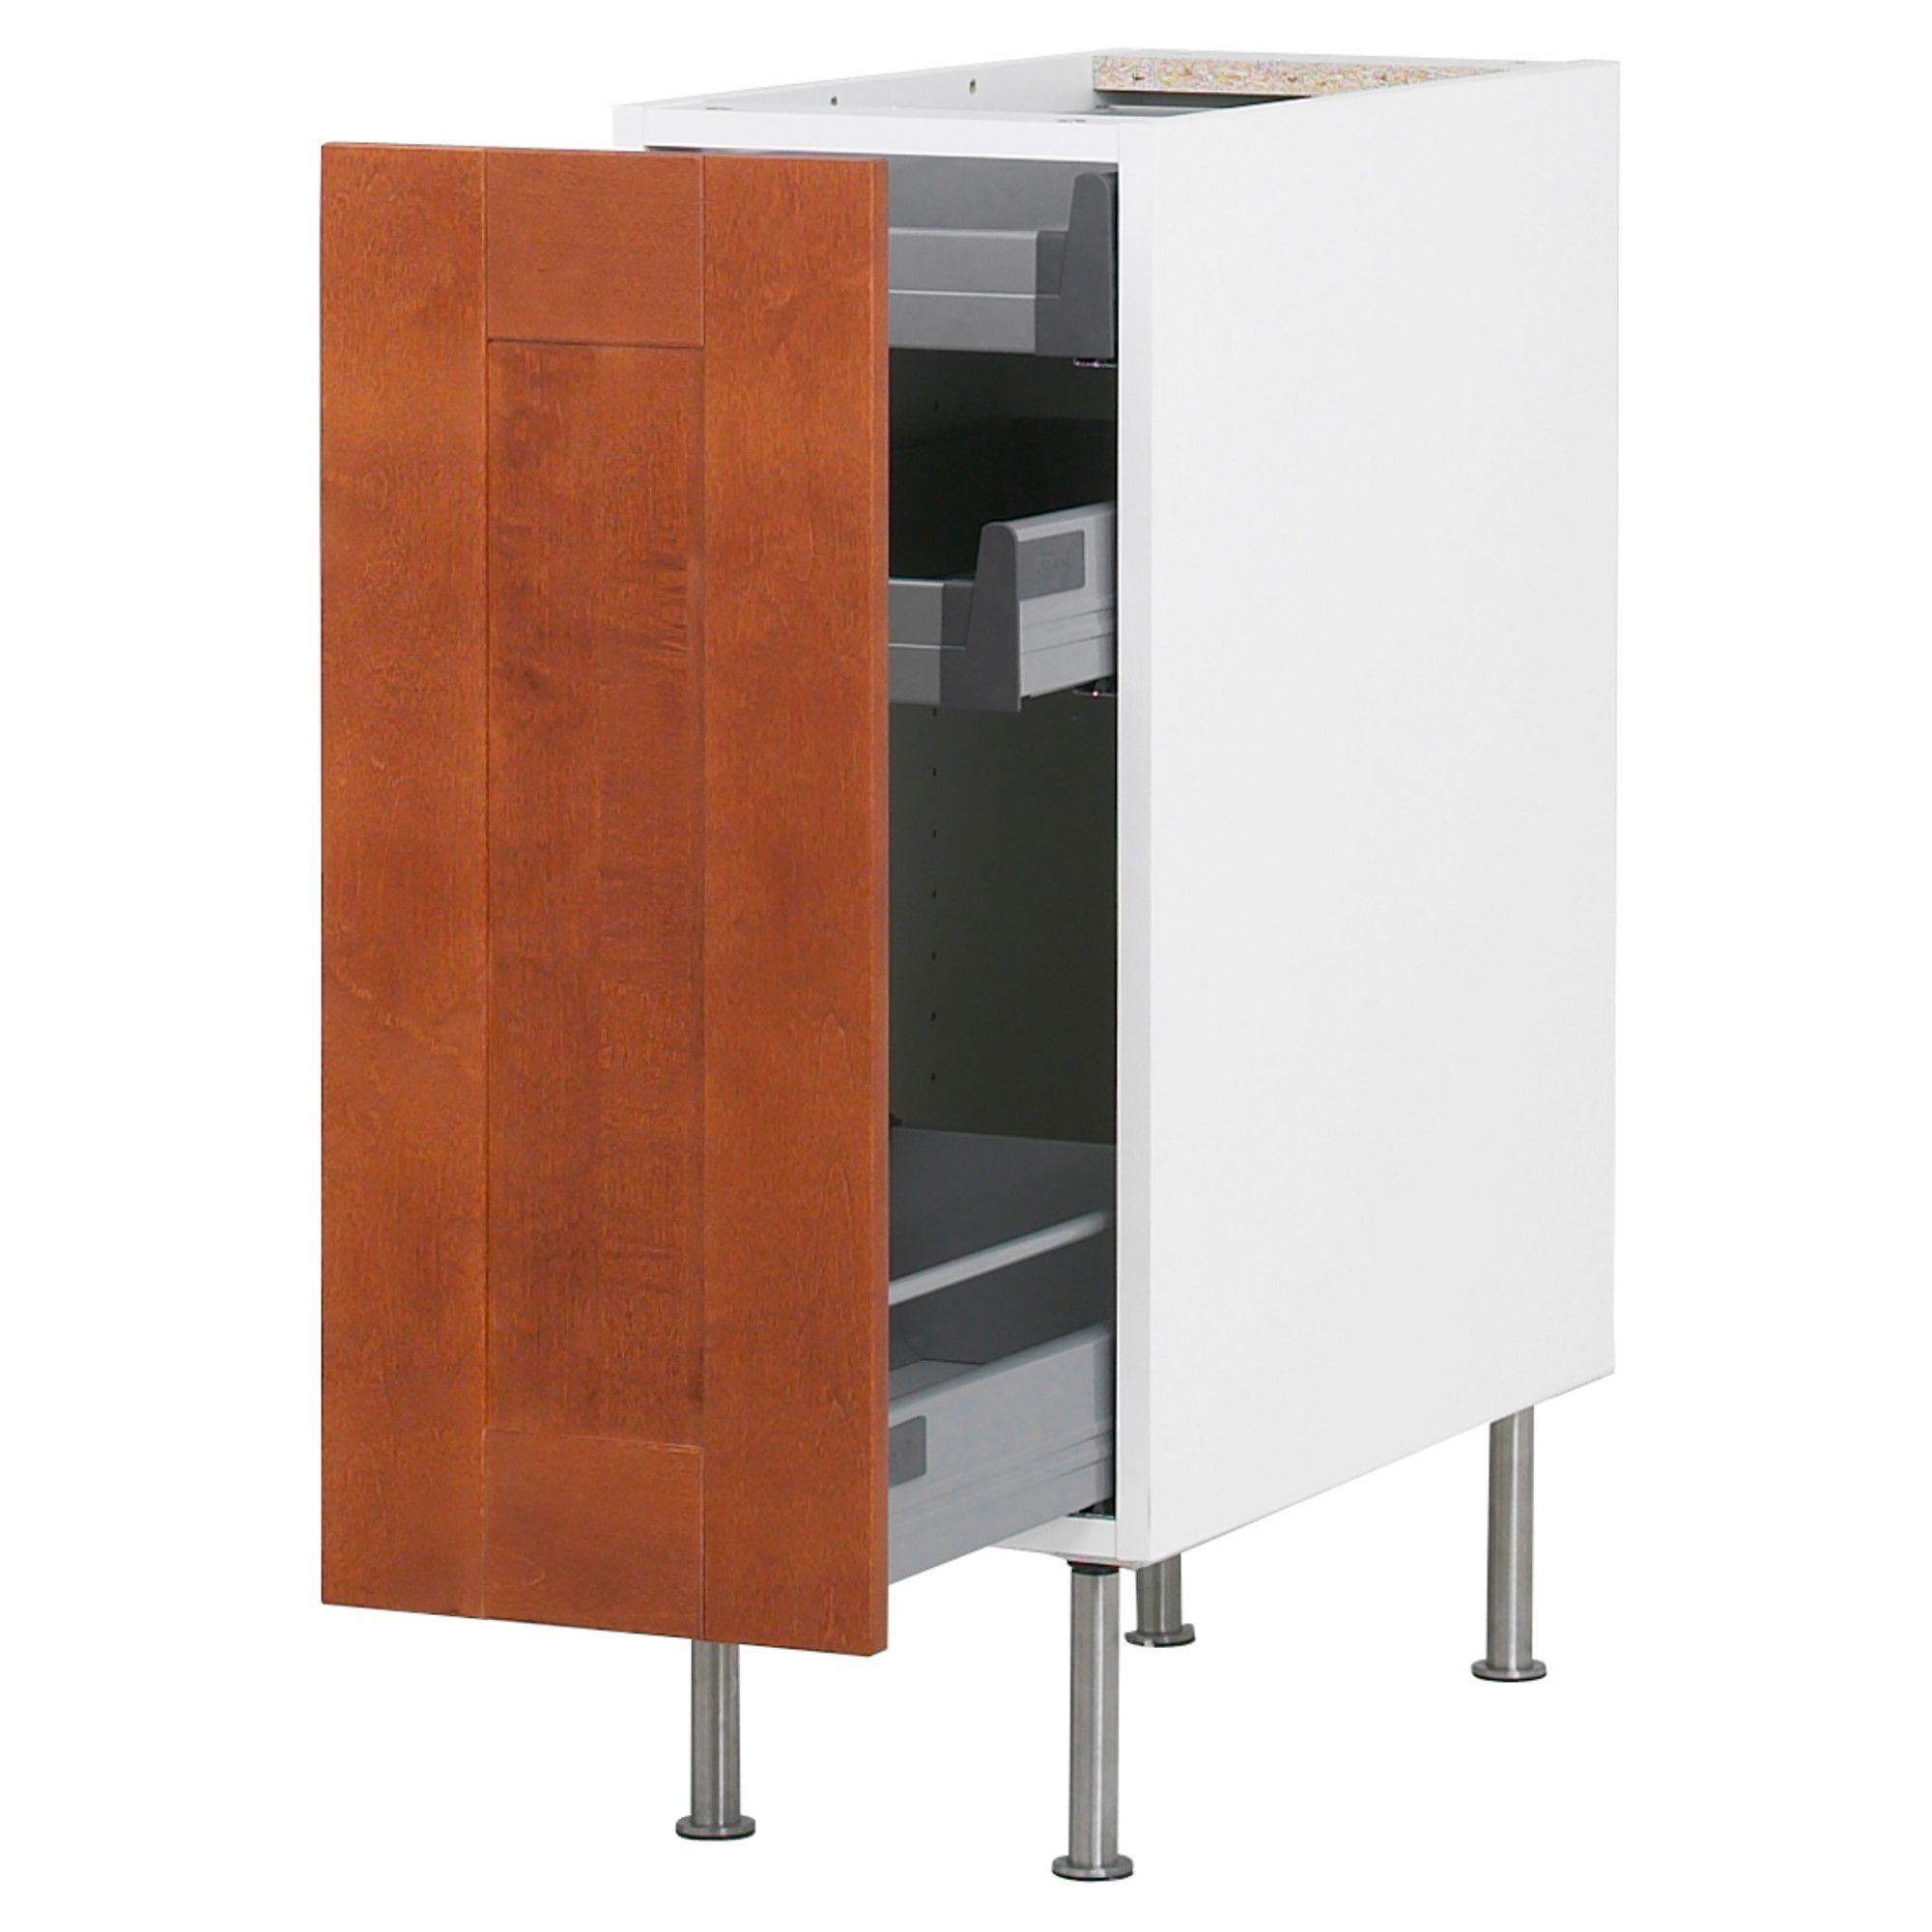 Ikea Kitchen Birch akurum base cabinet with pull-out storage - birch effect, Ädel